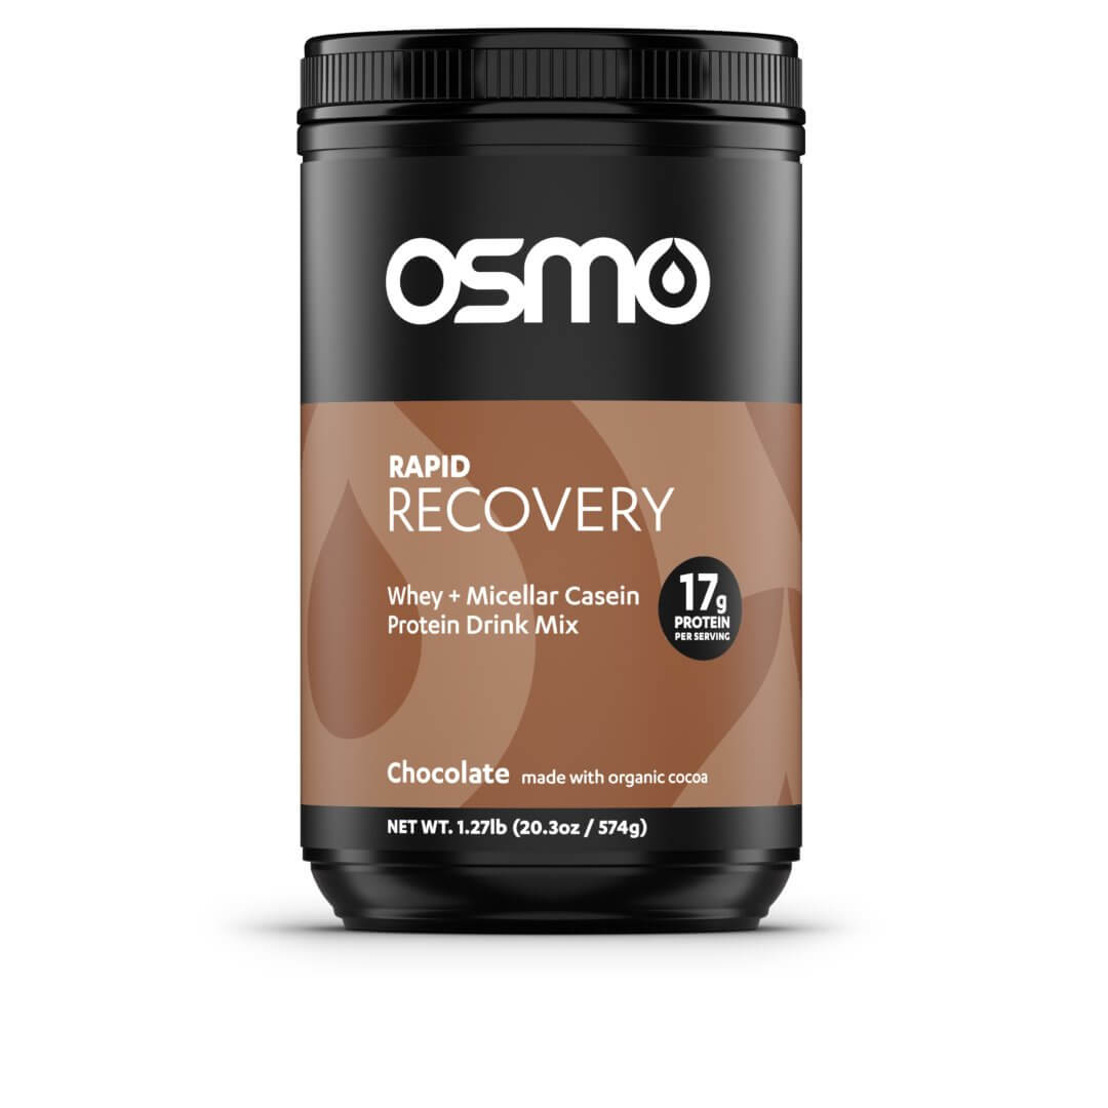 OSMO Launches New Recovery Options